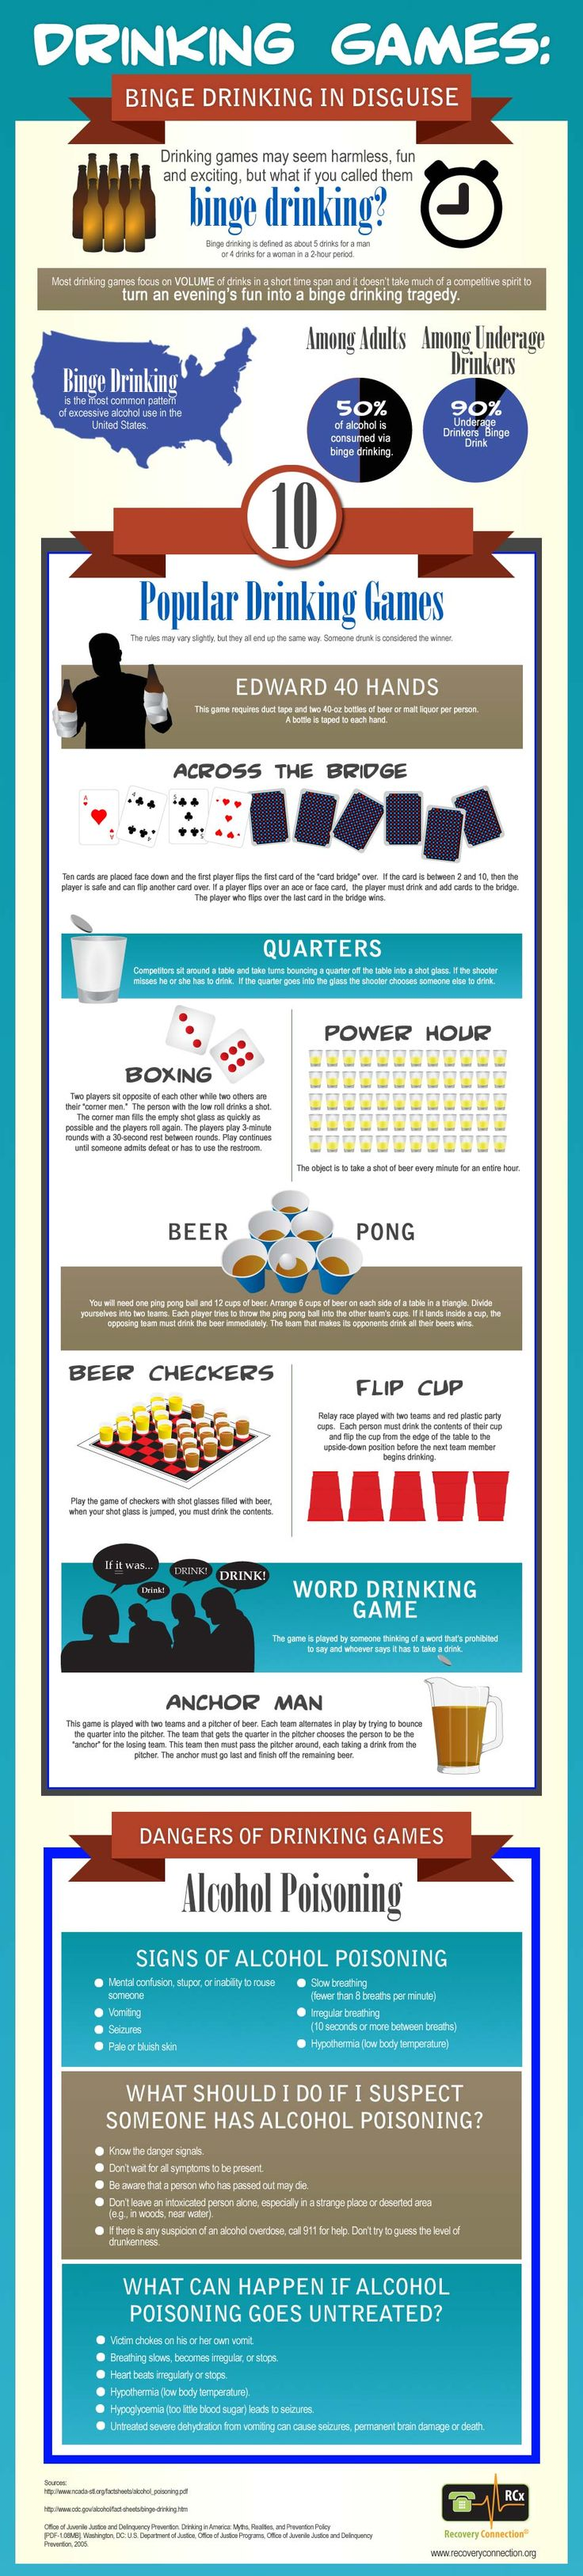 Drinking Games - Binge Drinking Alcohol in Disguise http://www.recoveryconnection.org/drinking-games-infographic/# #alcohol #bingedrinking